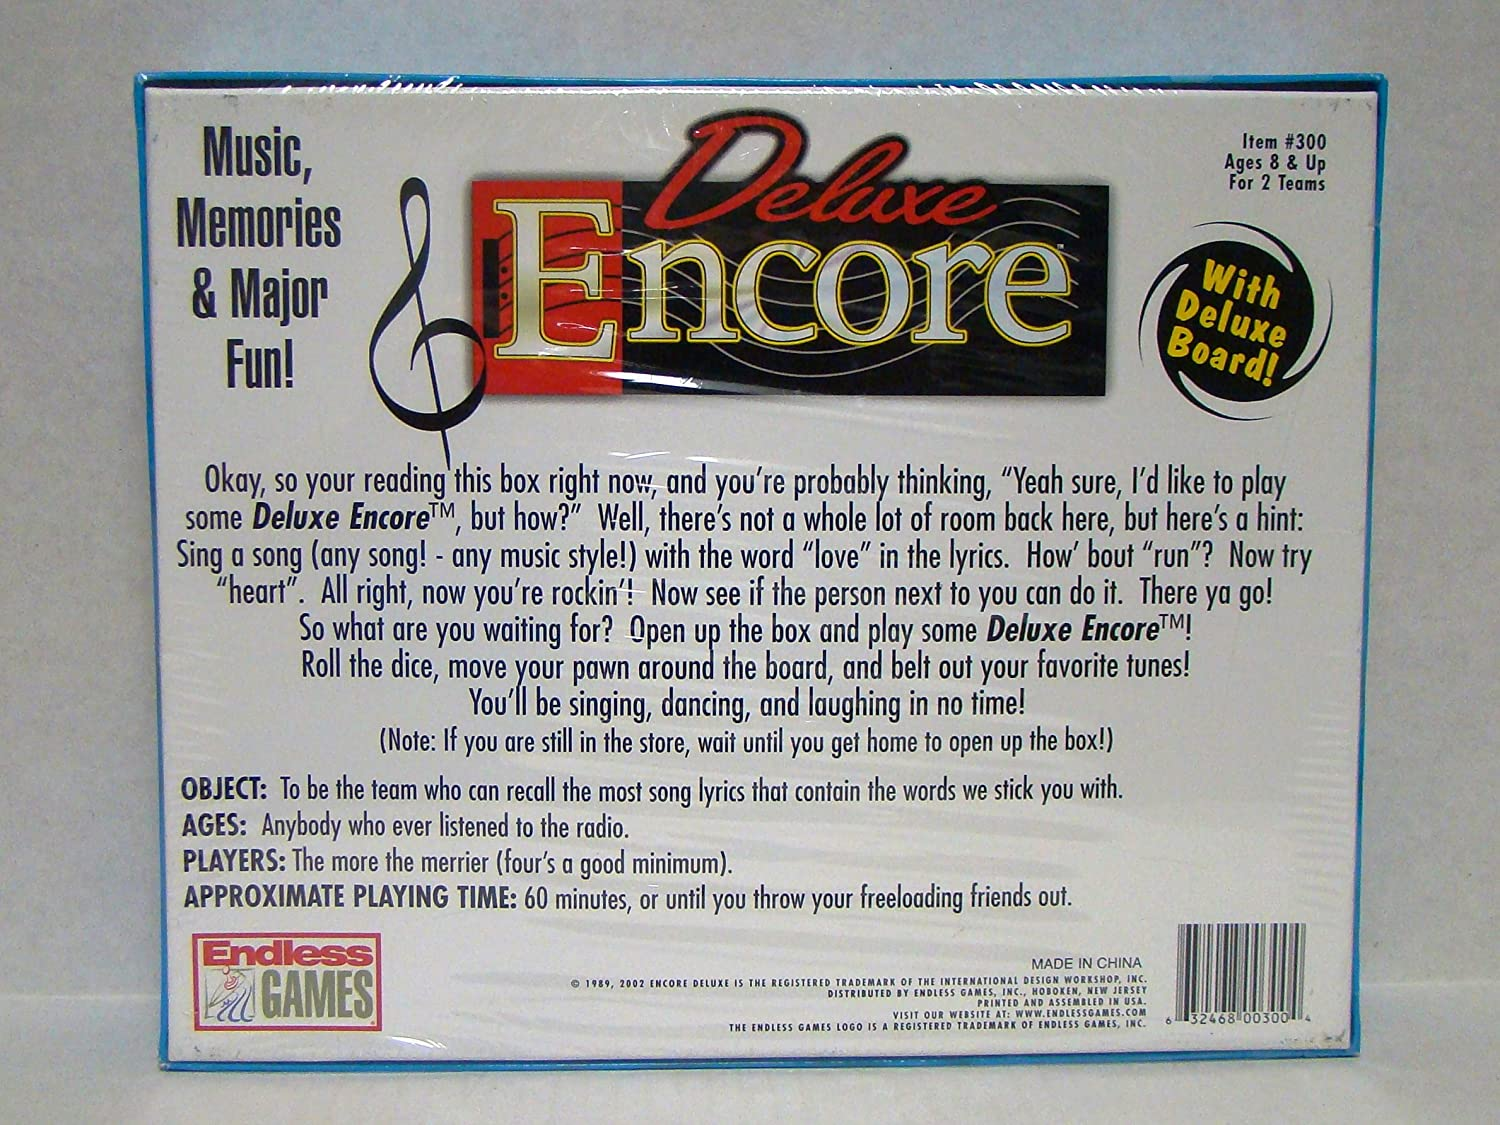 Amazon.com: ENCORE DELUXE by ENDLESS GAMES (BOARD GAME): Toys & Games